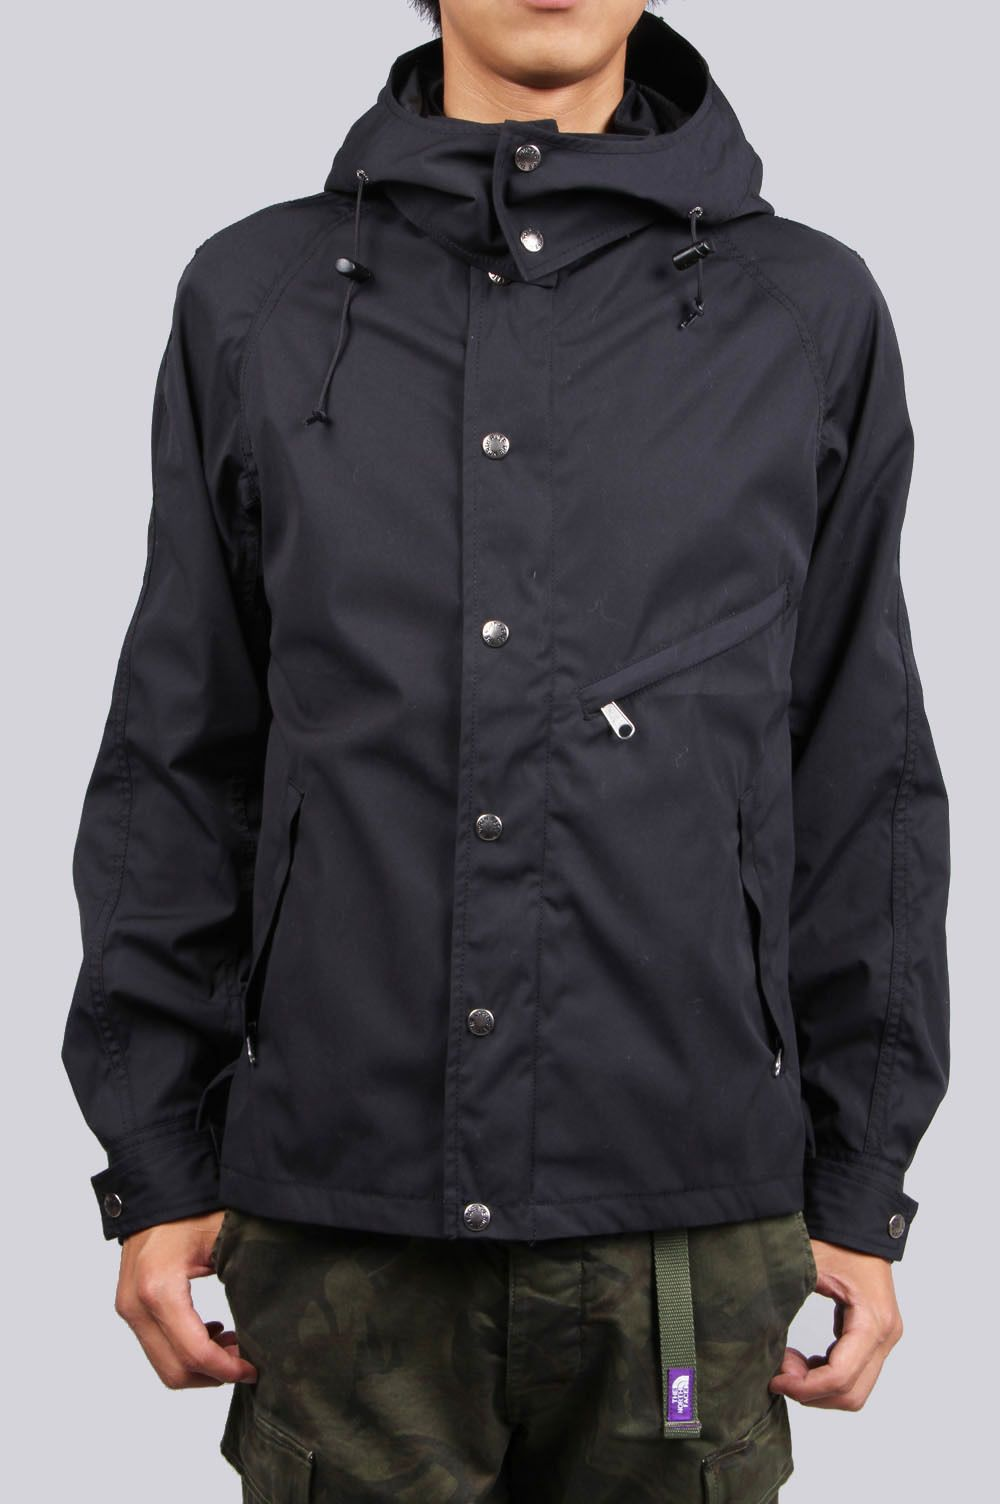 a007887eb The North Face Purple Label - 65/35 Grizzly Peak Jacket | Ffff ...